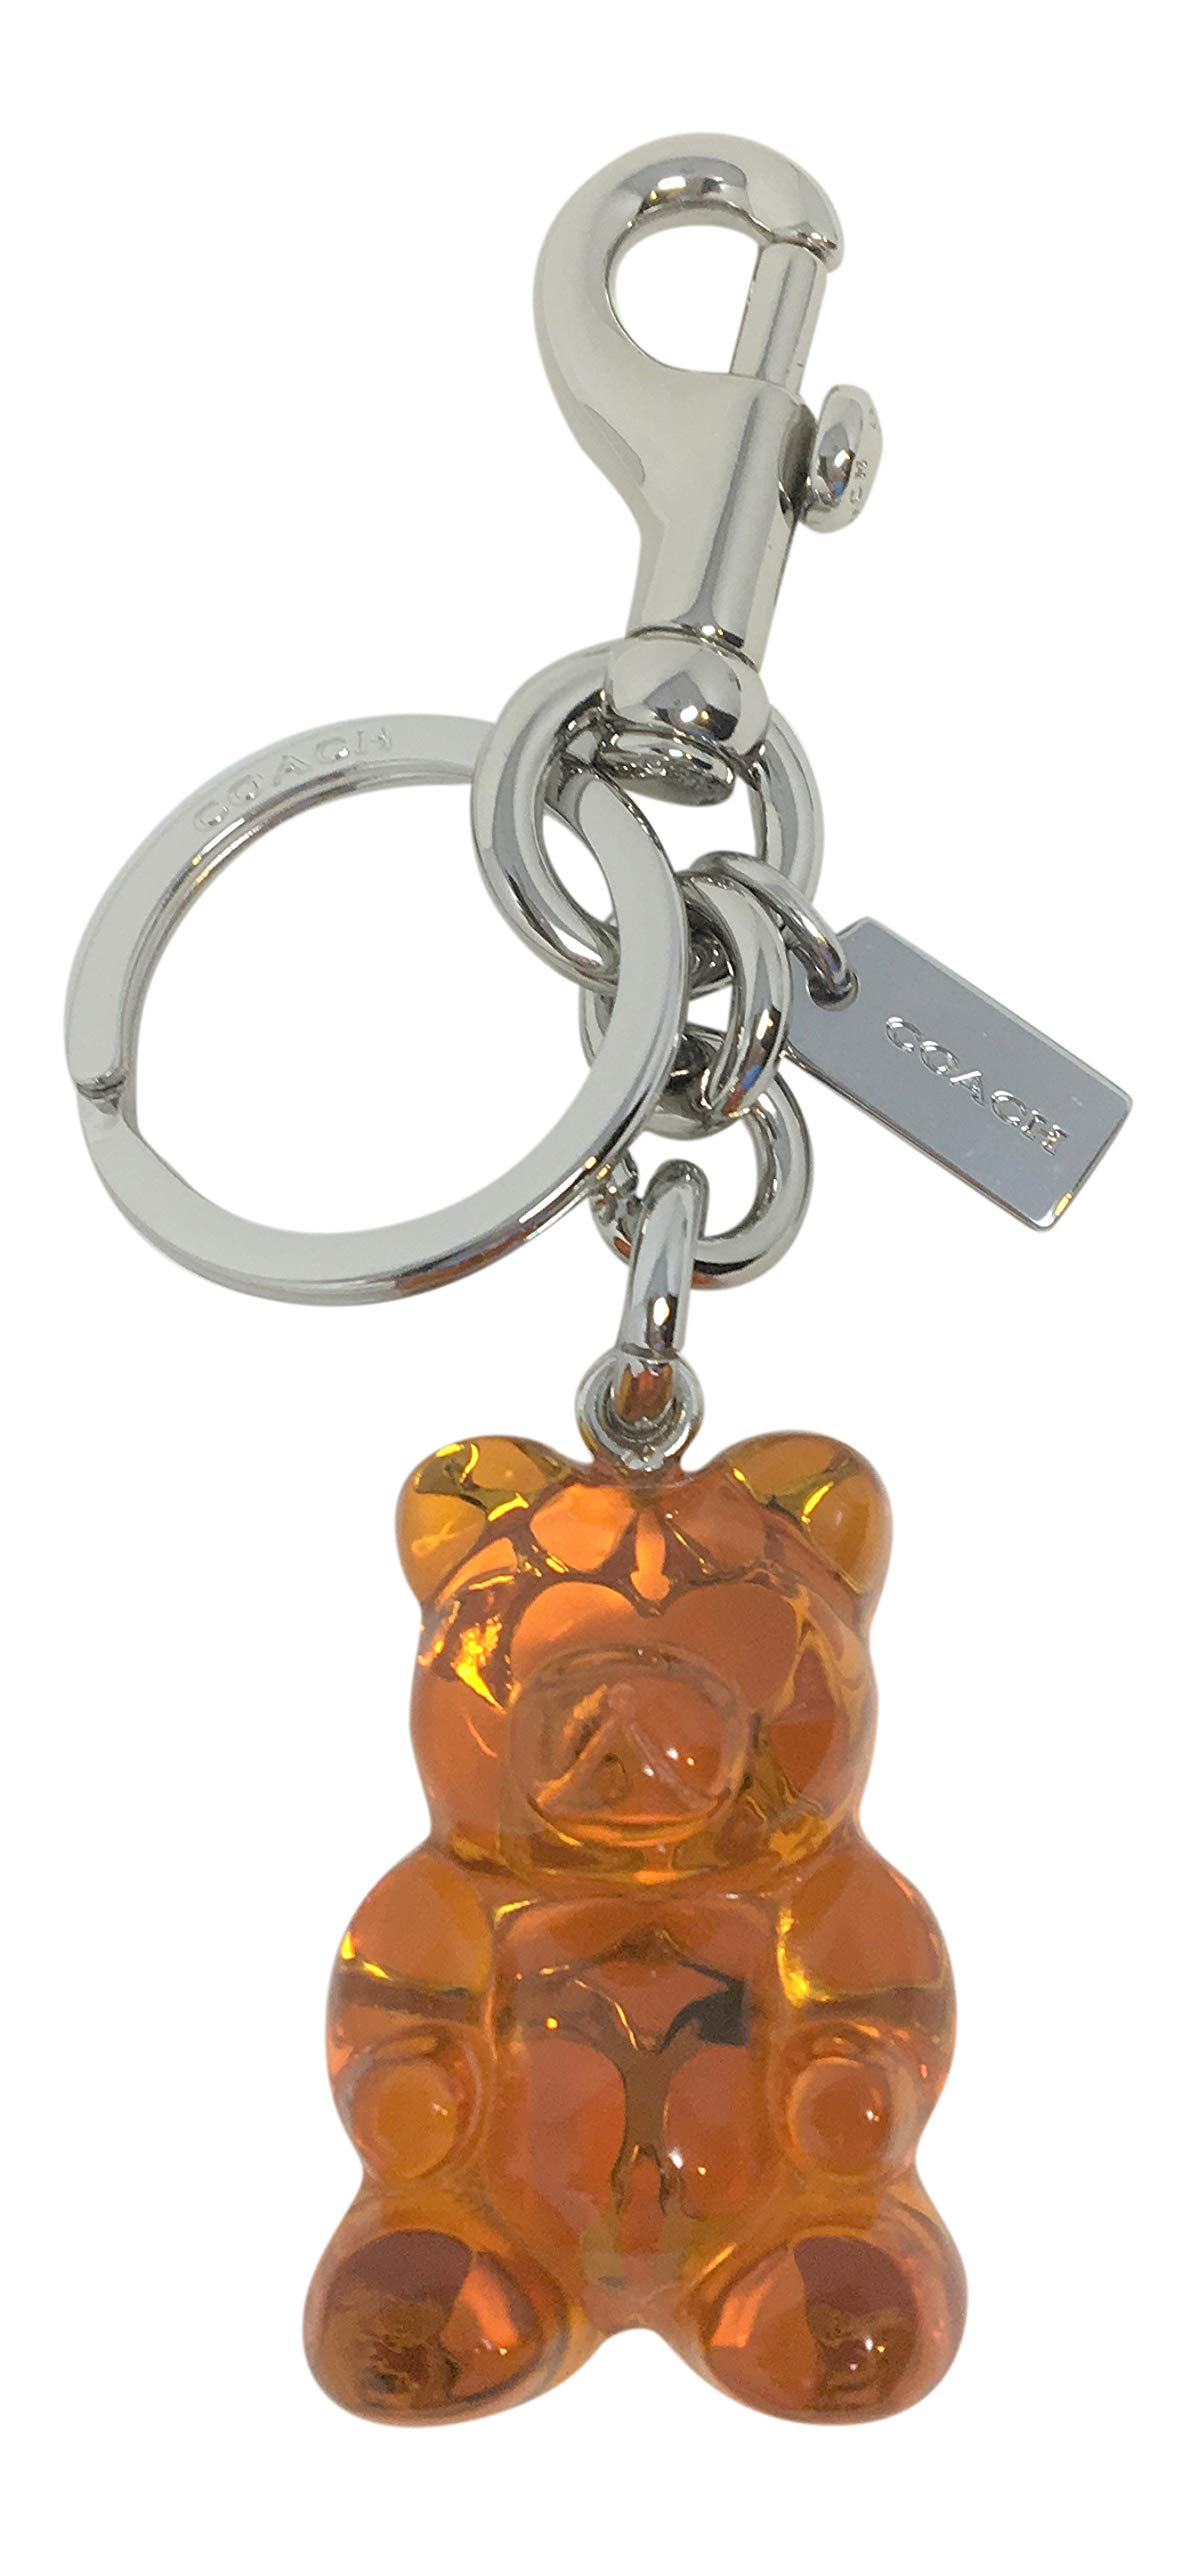 Coach Gummy Bear Bag Charm Key Chain Orange F77683 by Coach